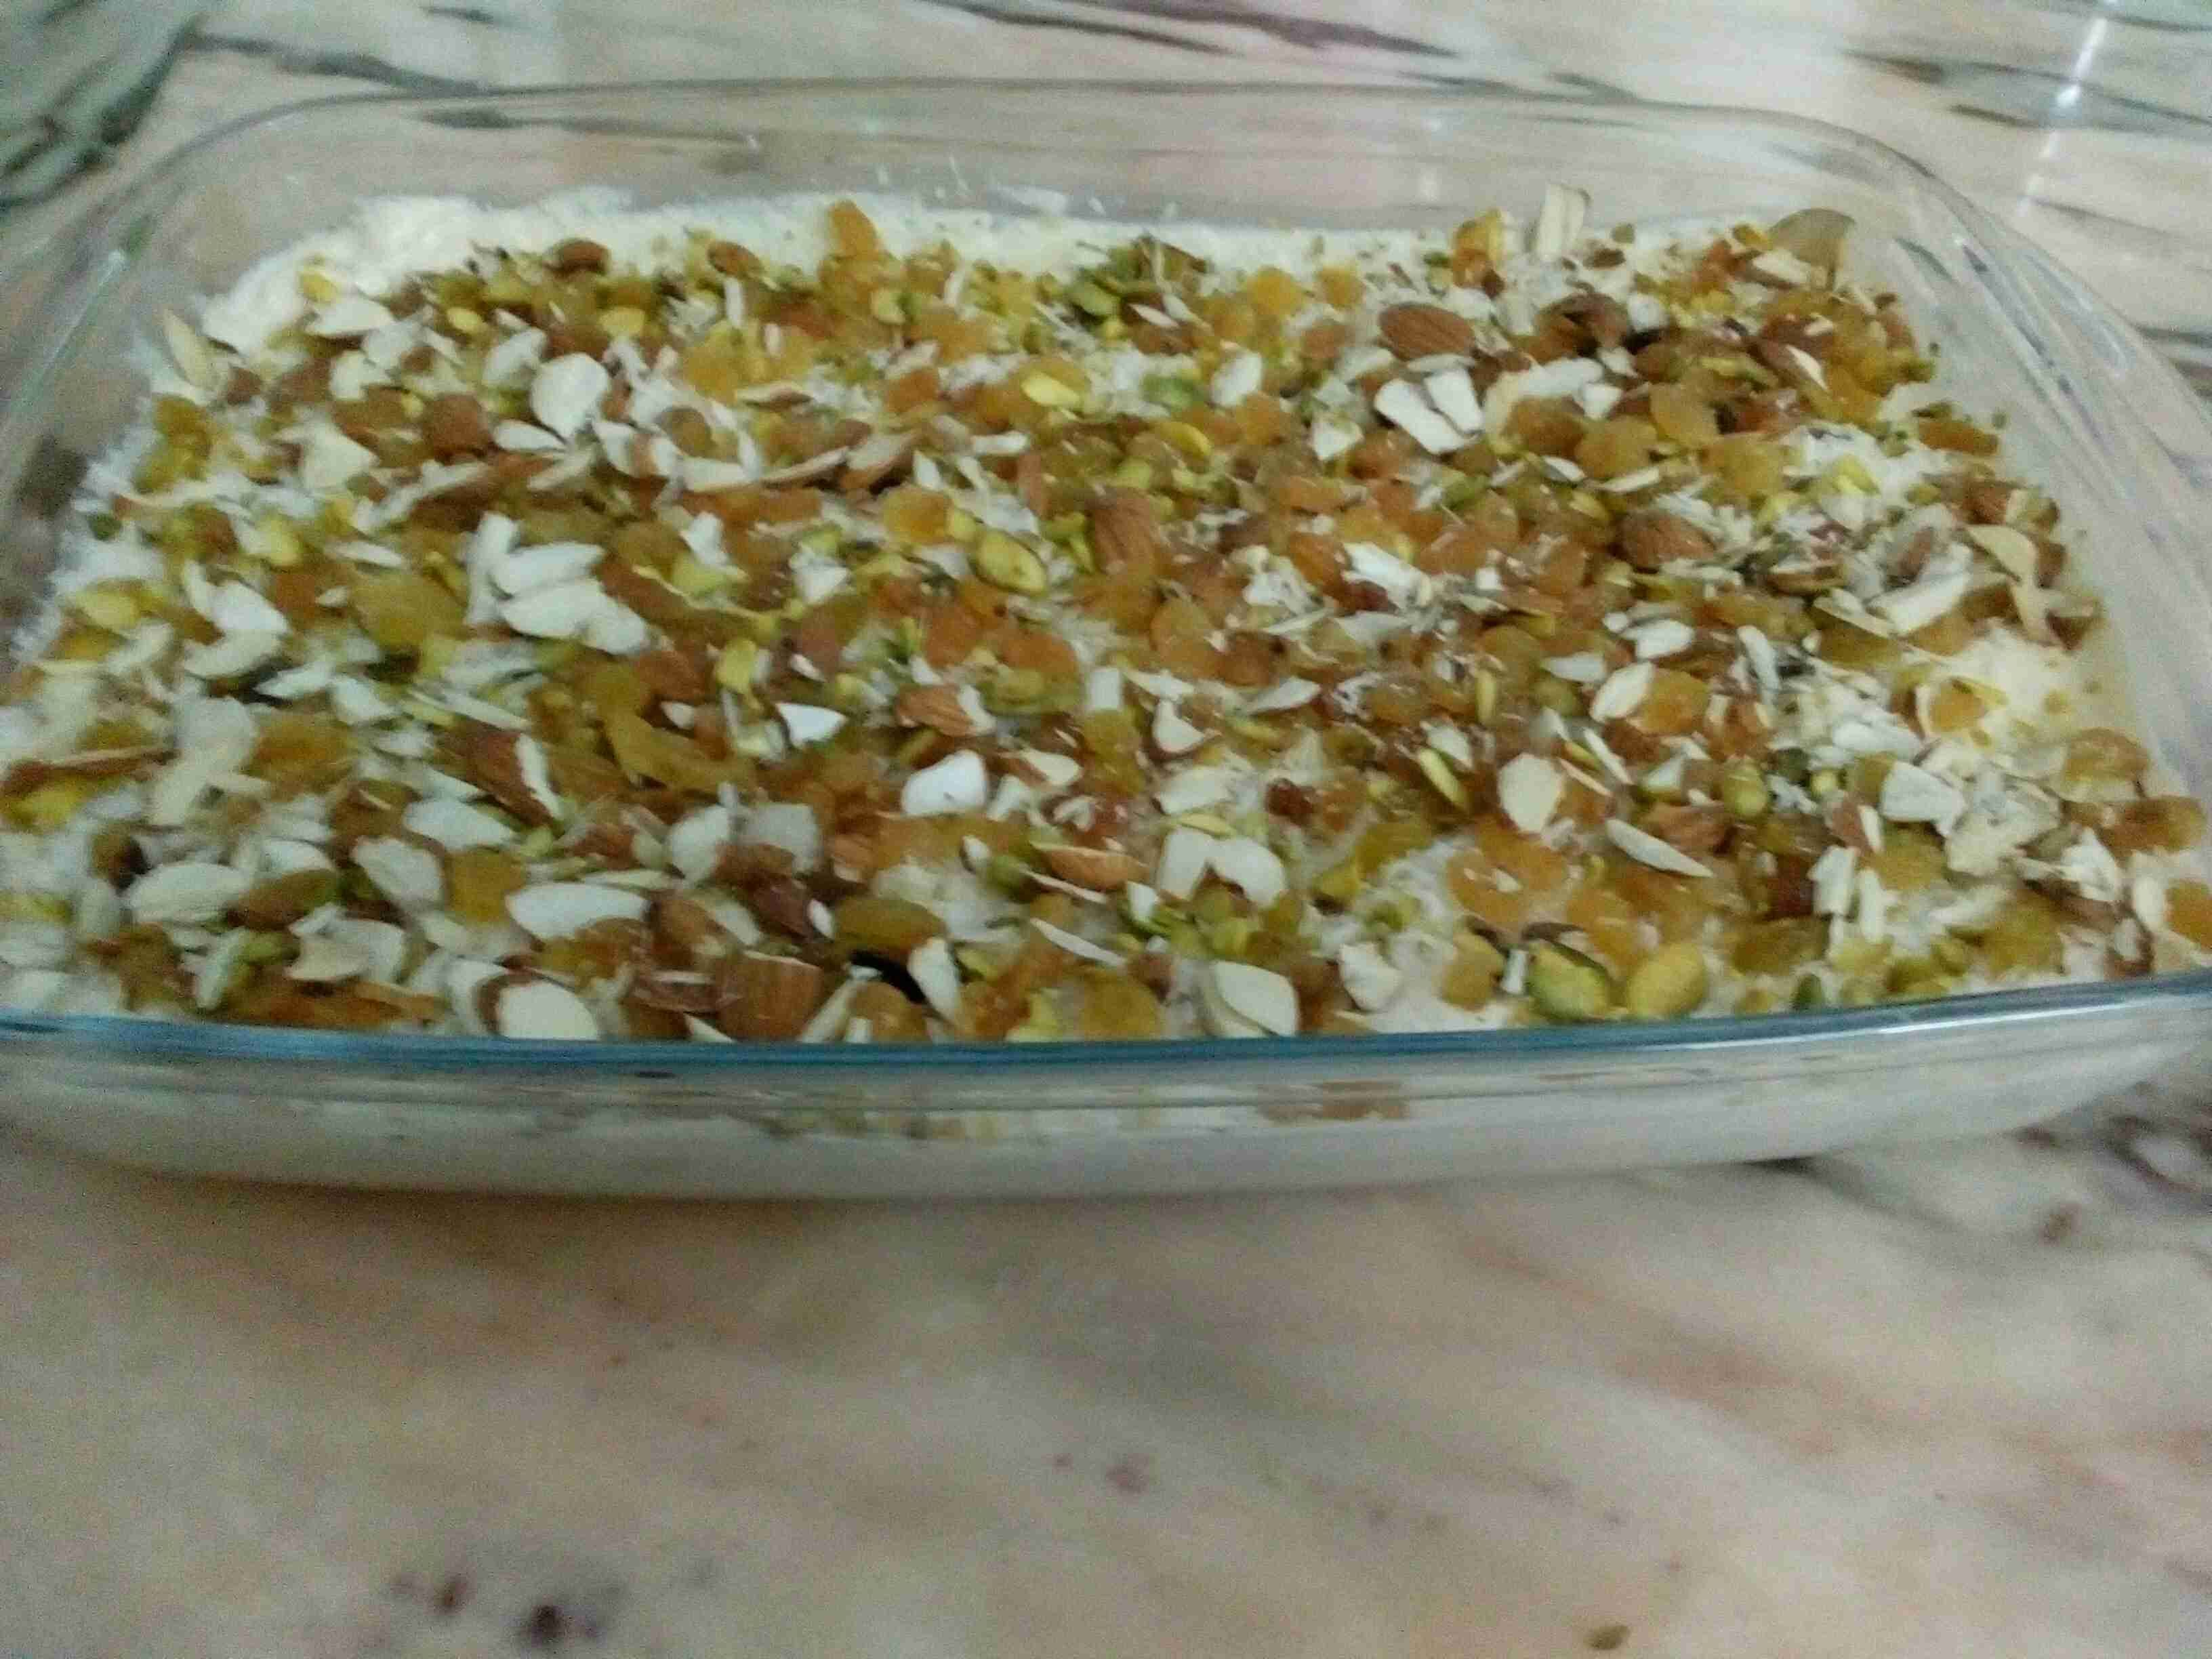 international food recipes and food cake forumfinder Image collections